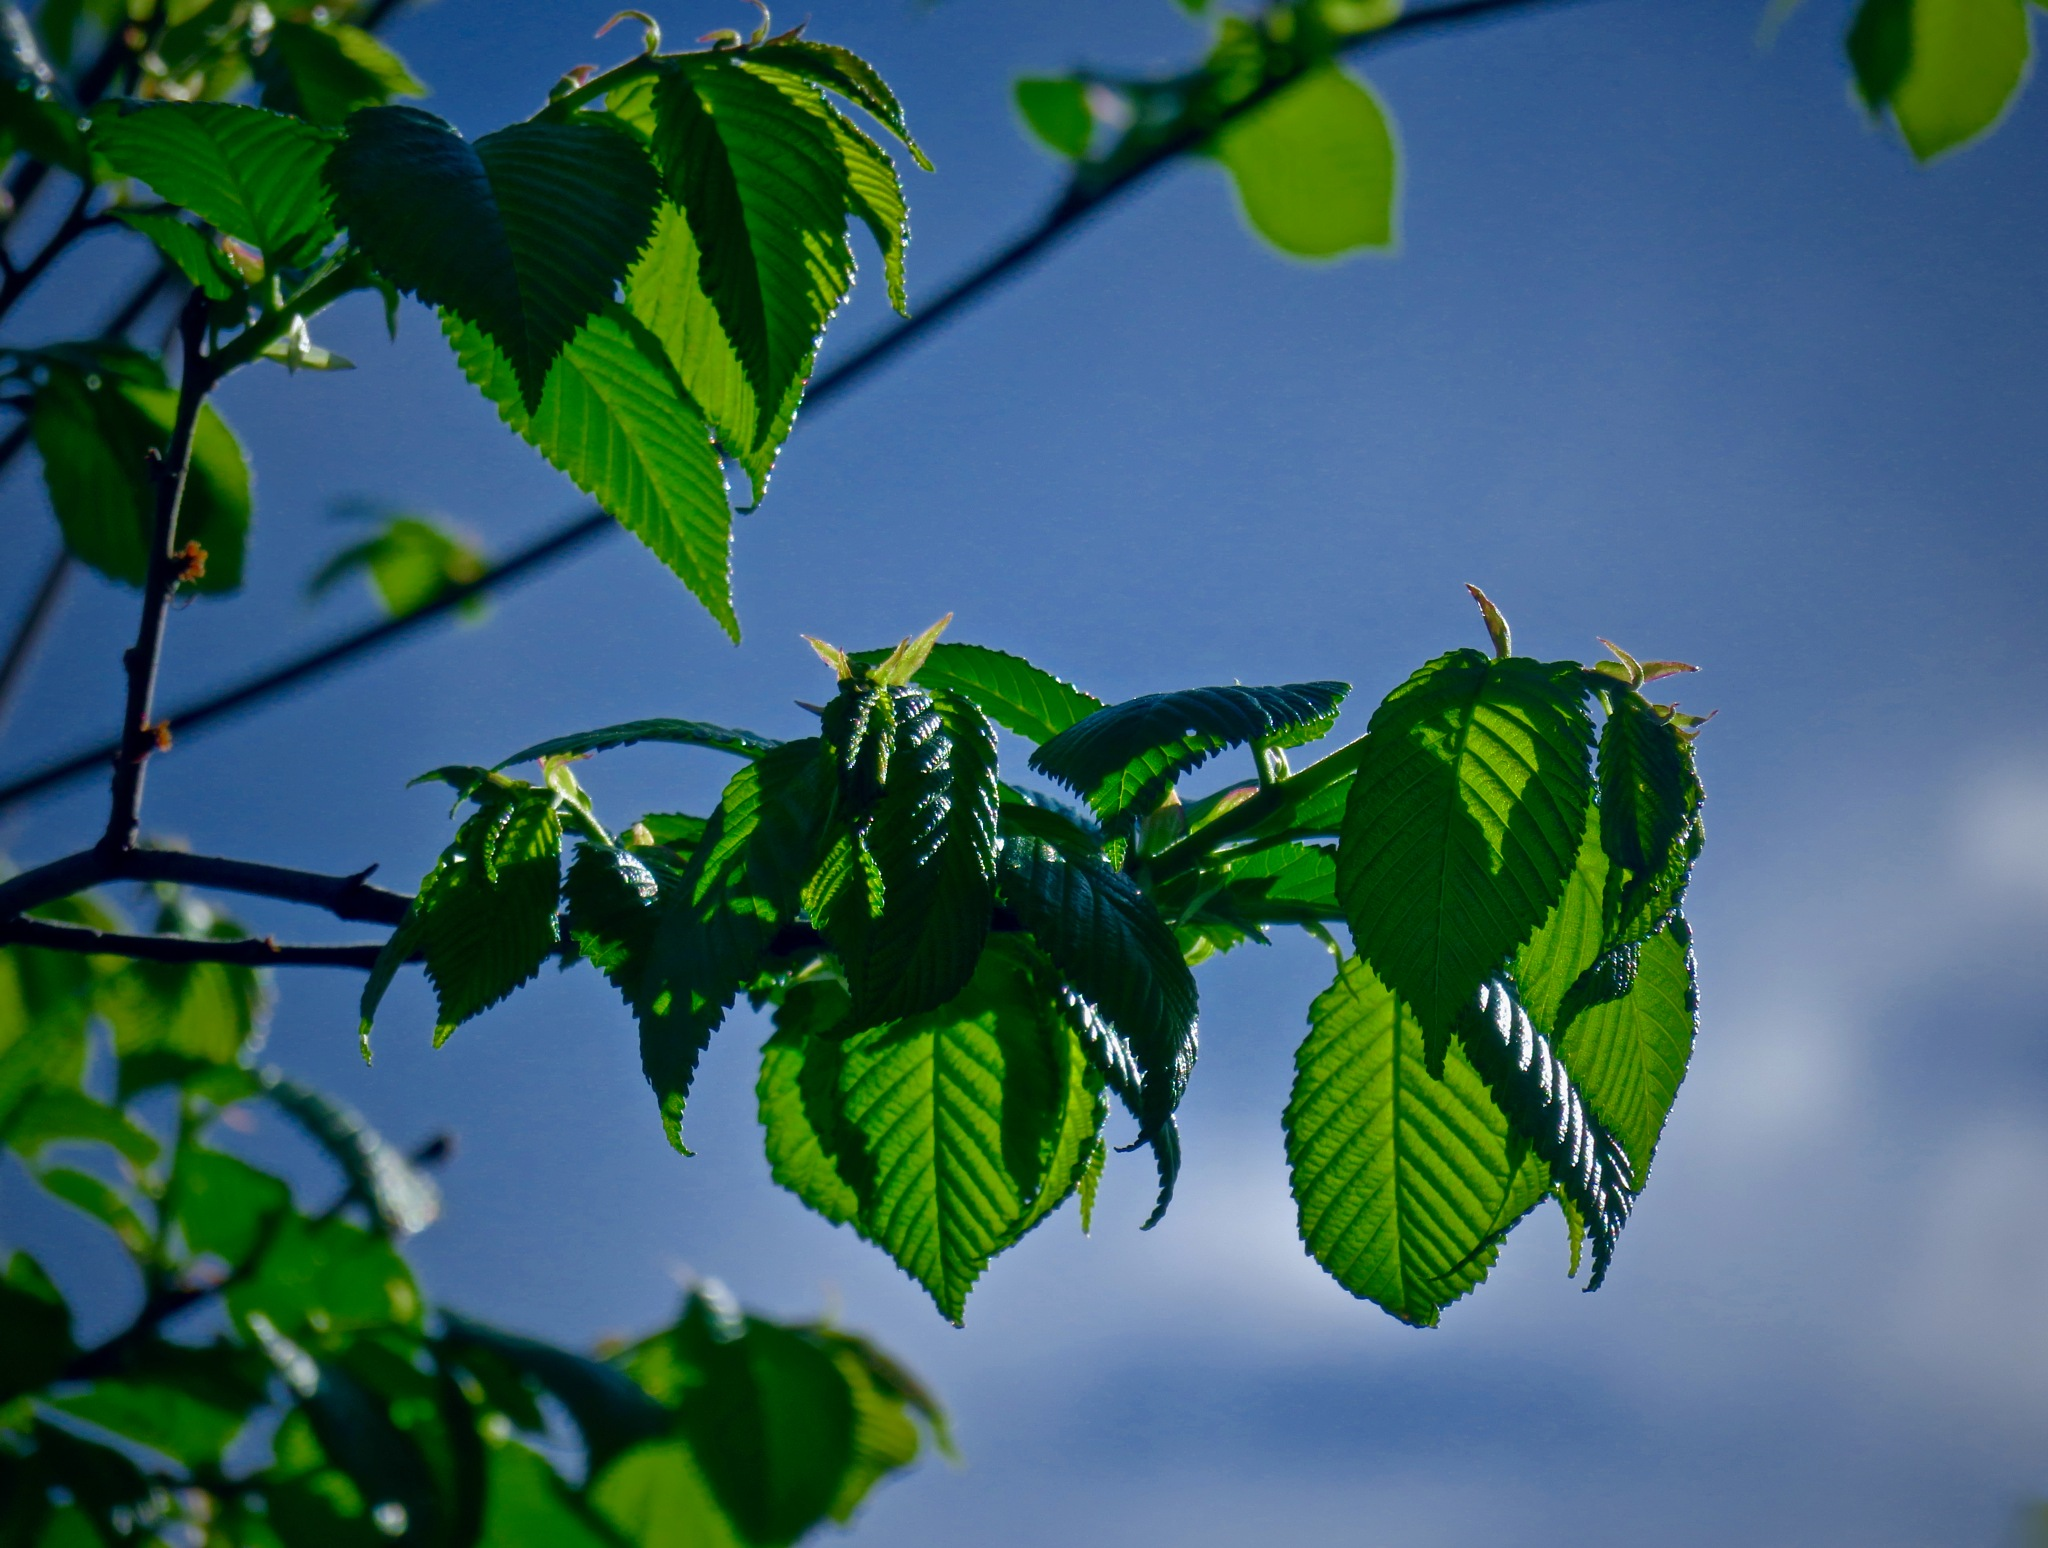 the leaves will turn into flowers within 500 hours by David Devion